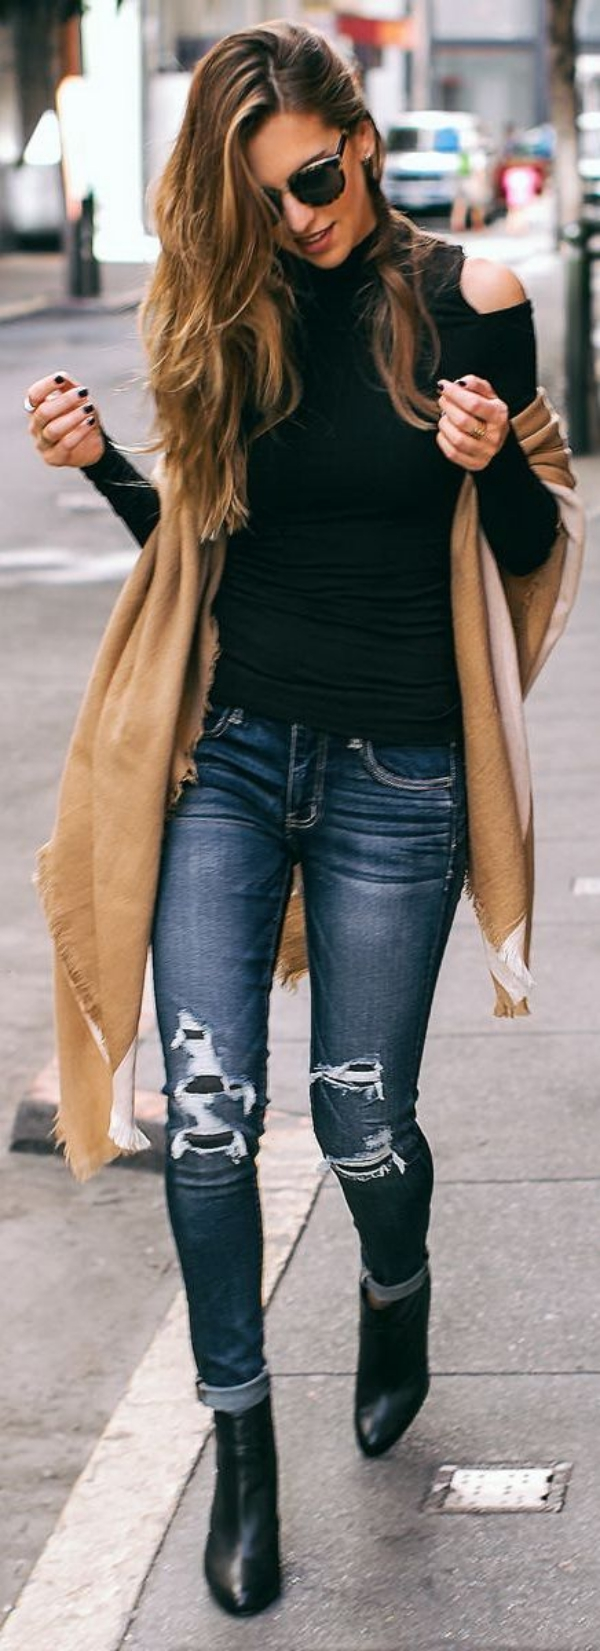 Simple-Style-Rules-followed-by-Fashion-Models-1